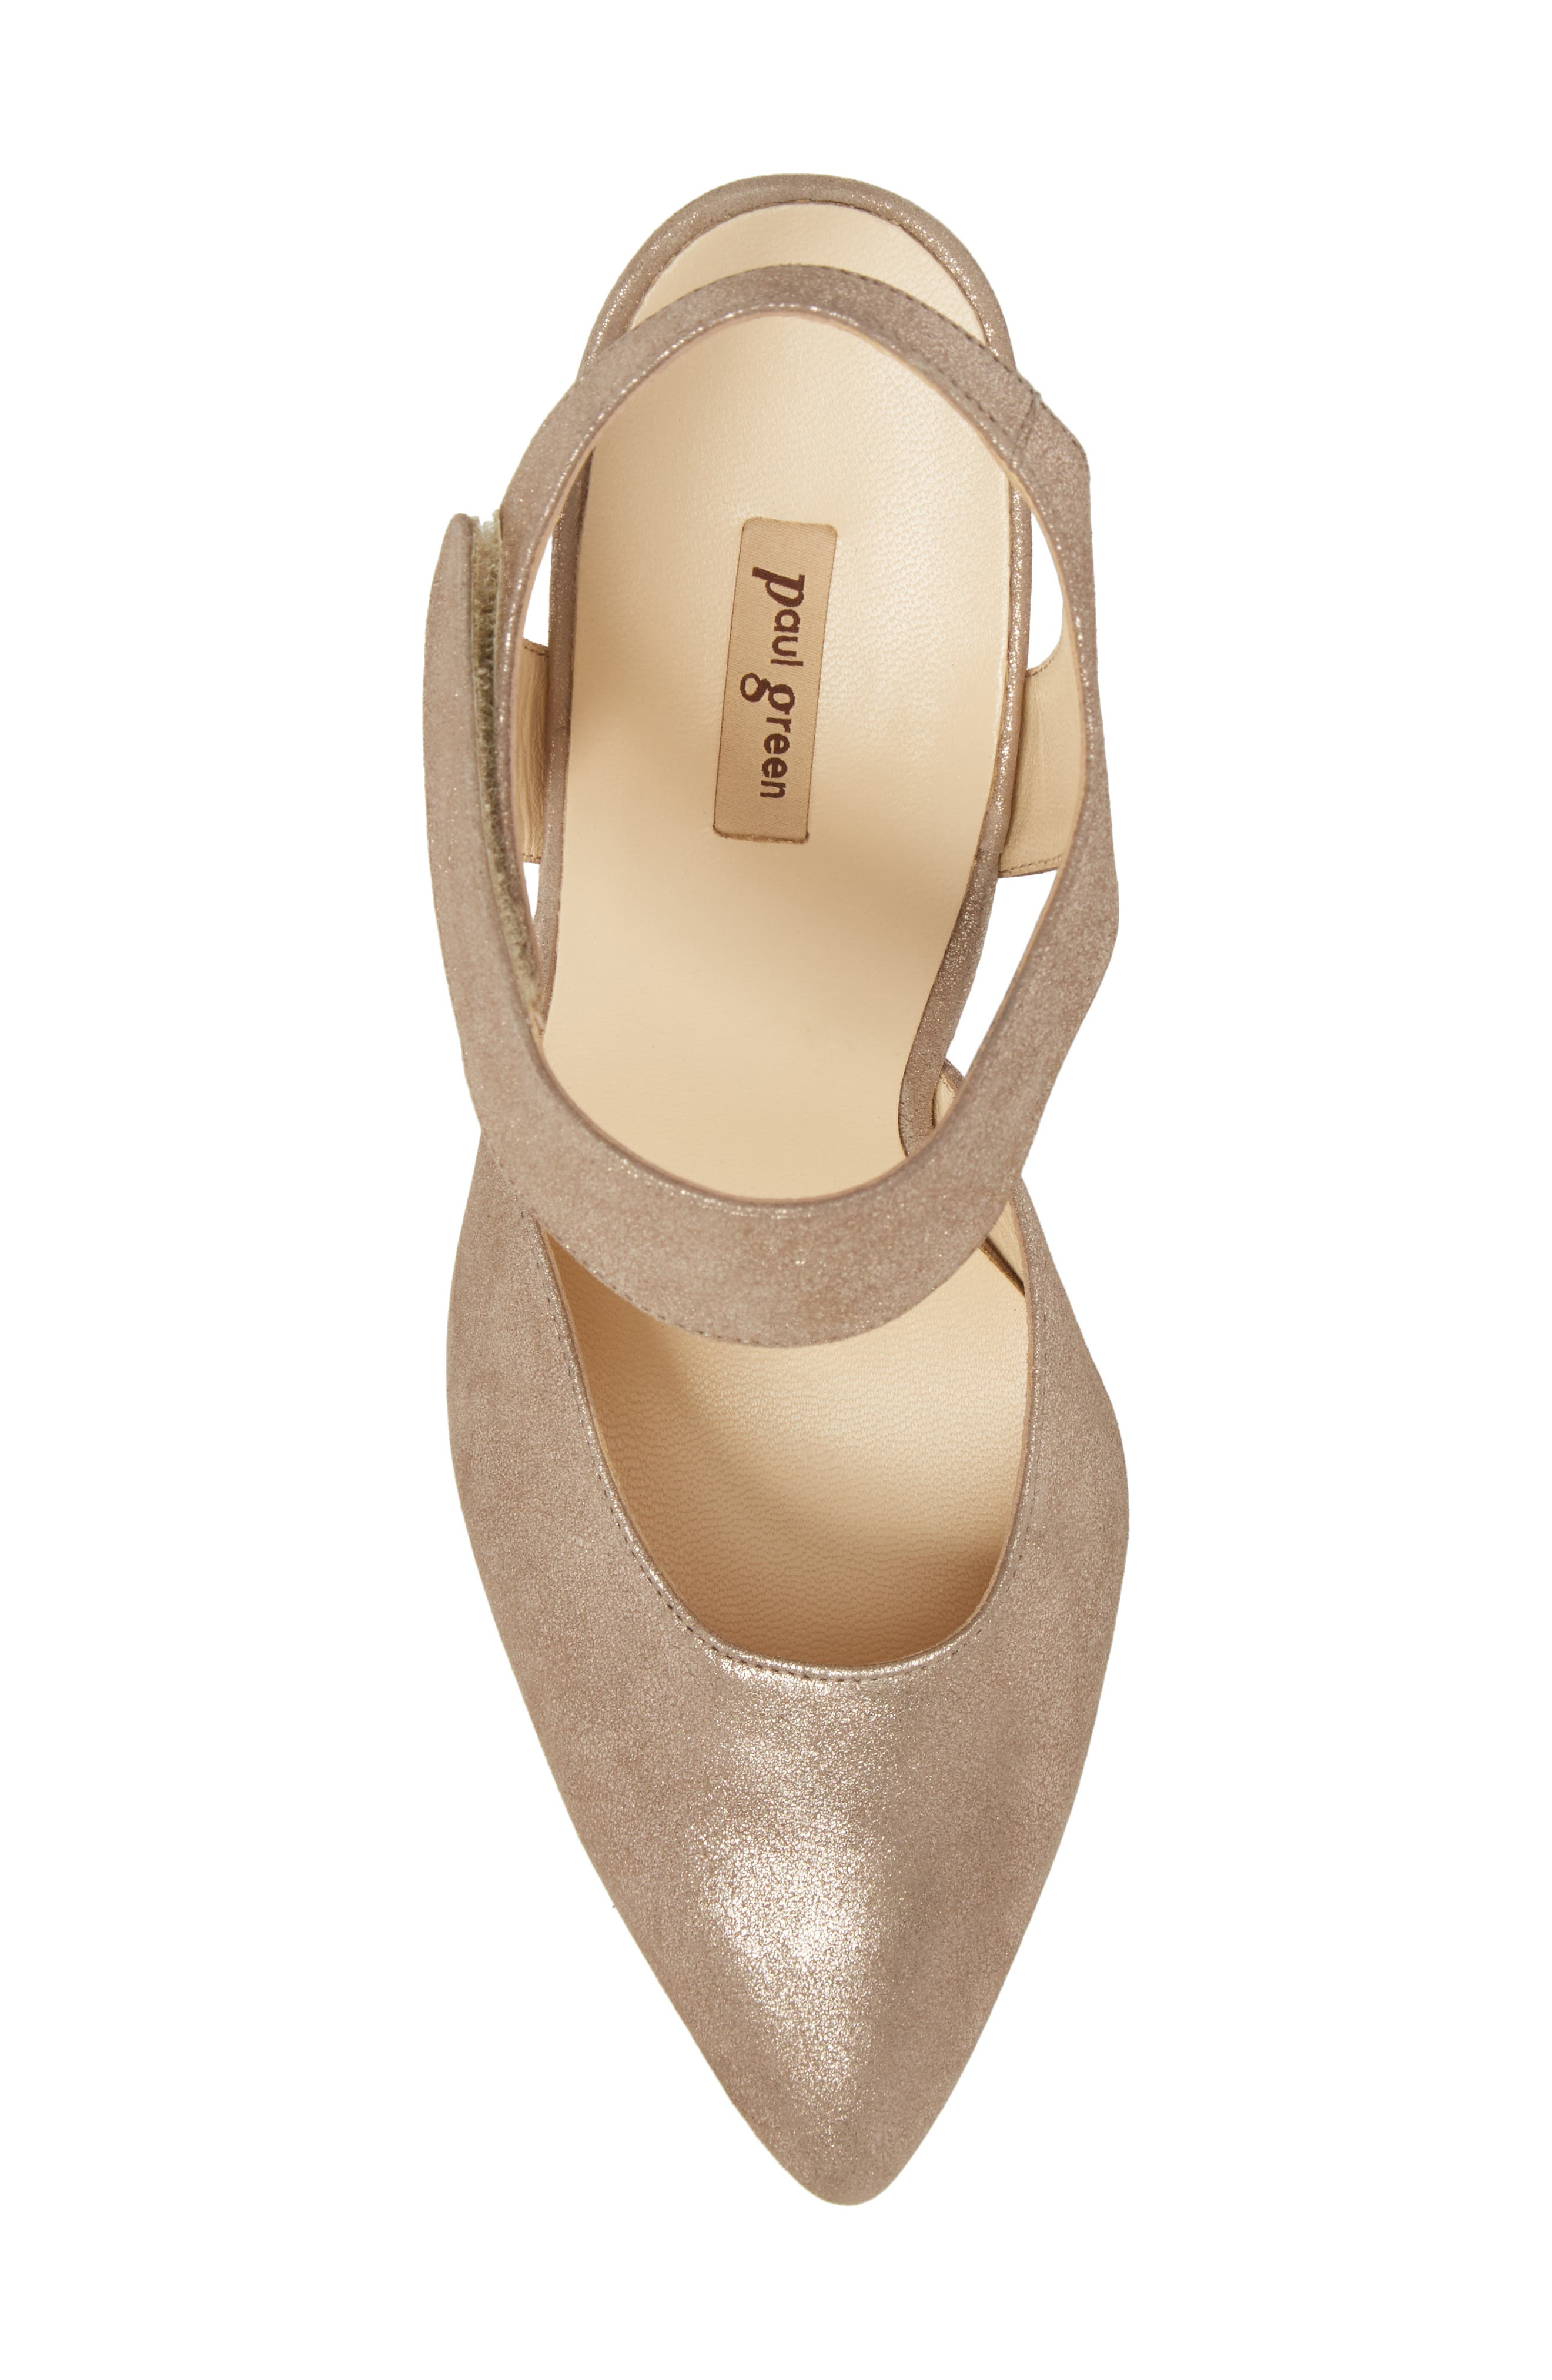 Nicolette Pointy Toe Pump,                             Alternate thumbnail 5, color,                             Champagne Metallic